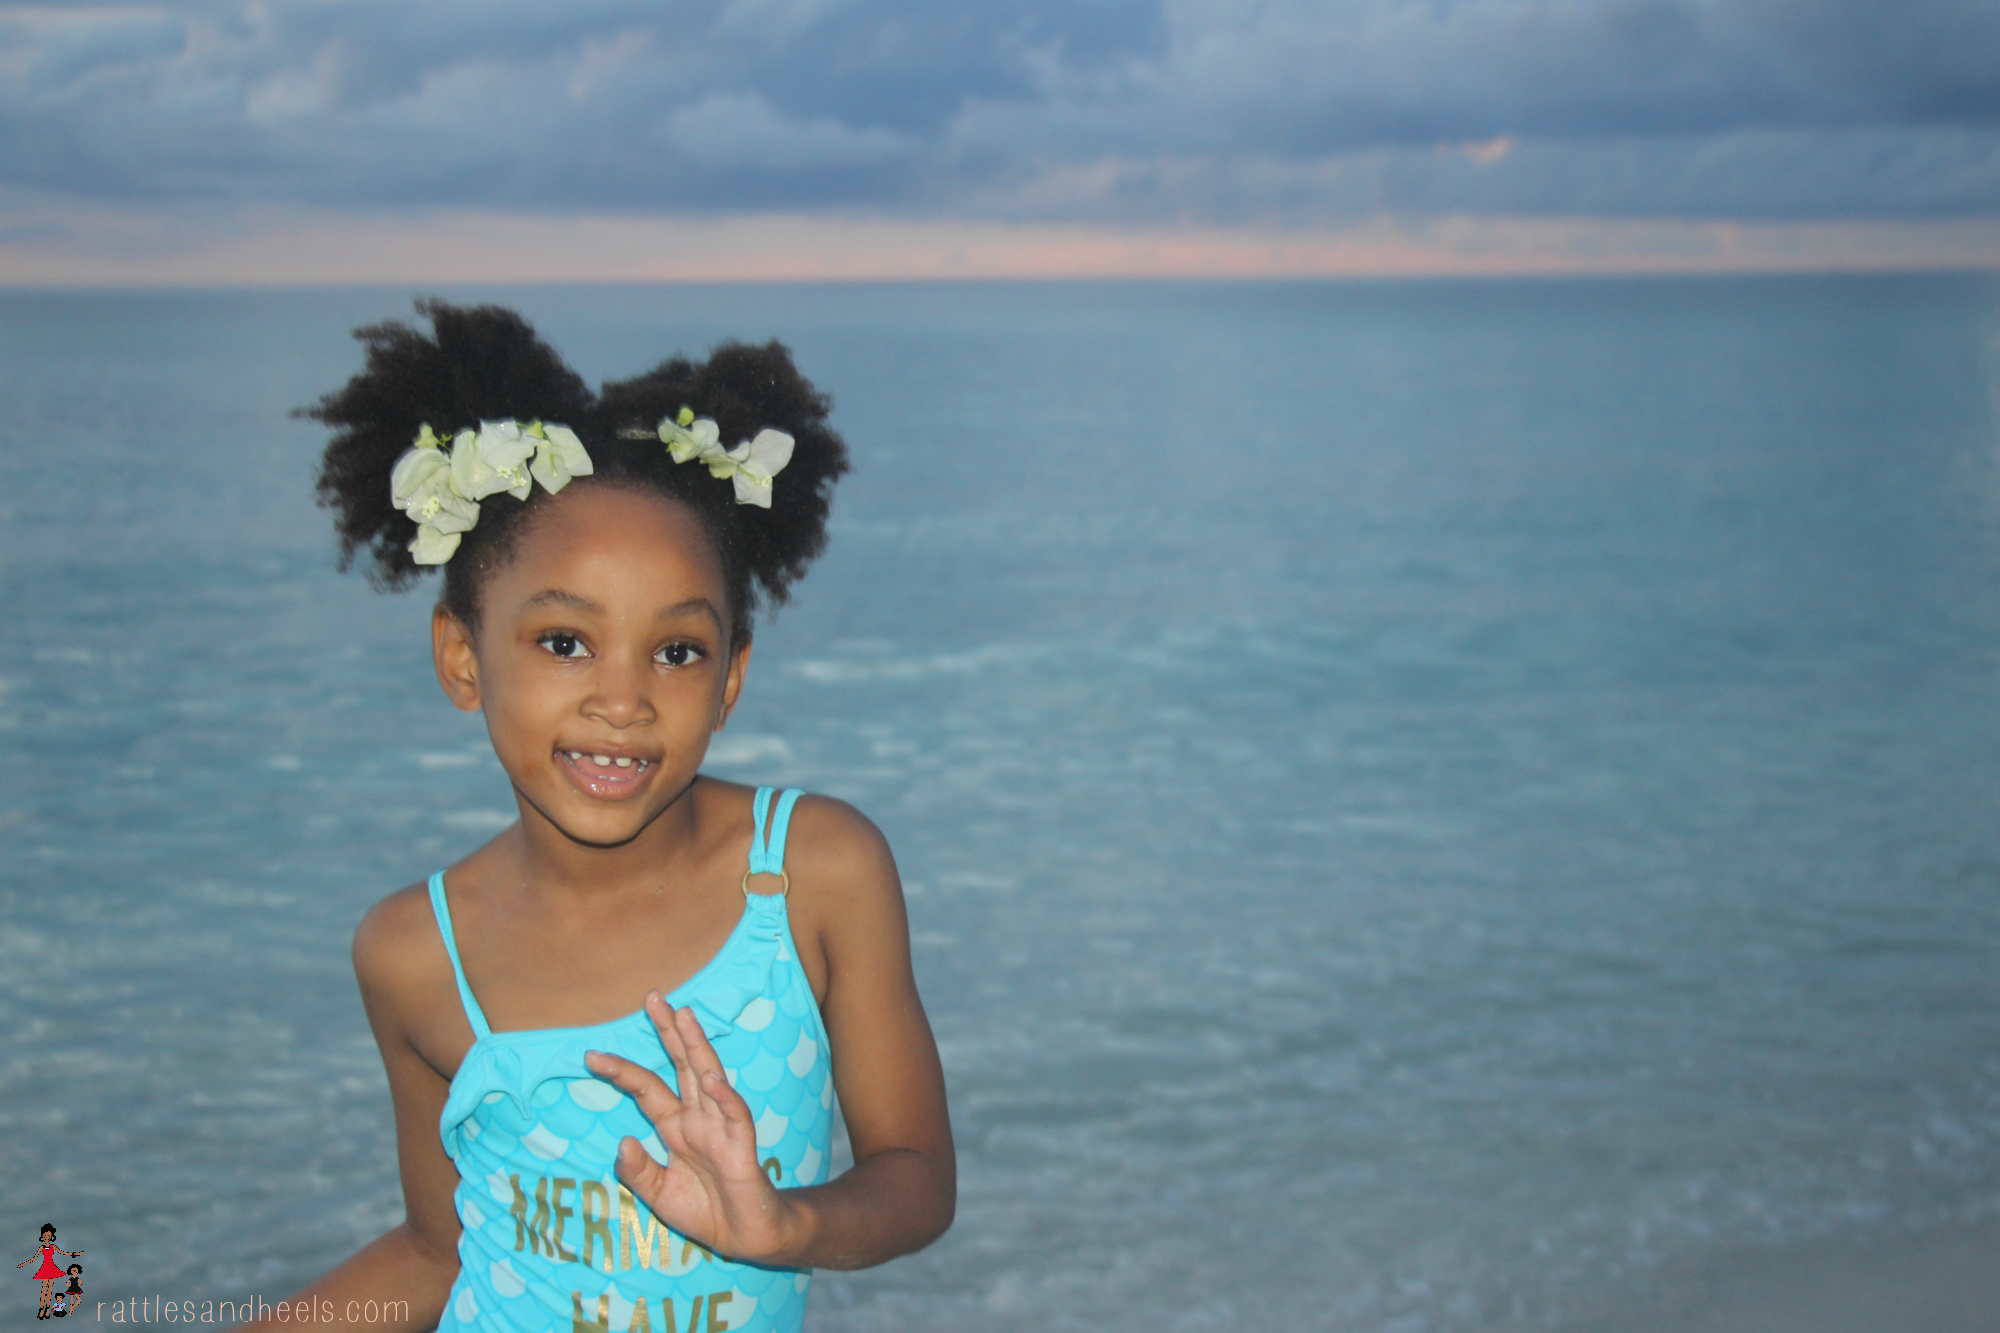 @rattlesandheels's cover photo for 'Beaches Moms: Jamaica With Kids - Rattles & Heels'